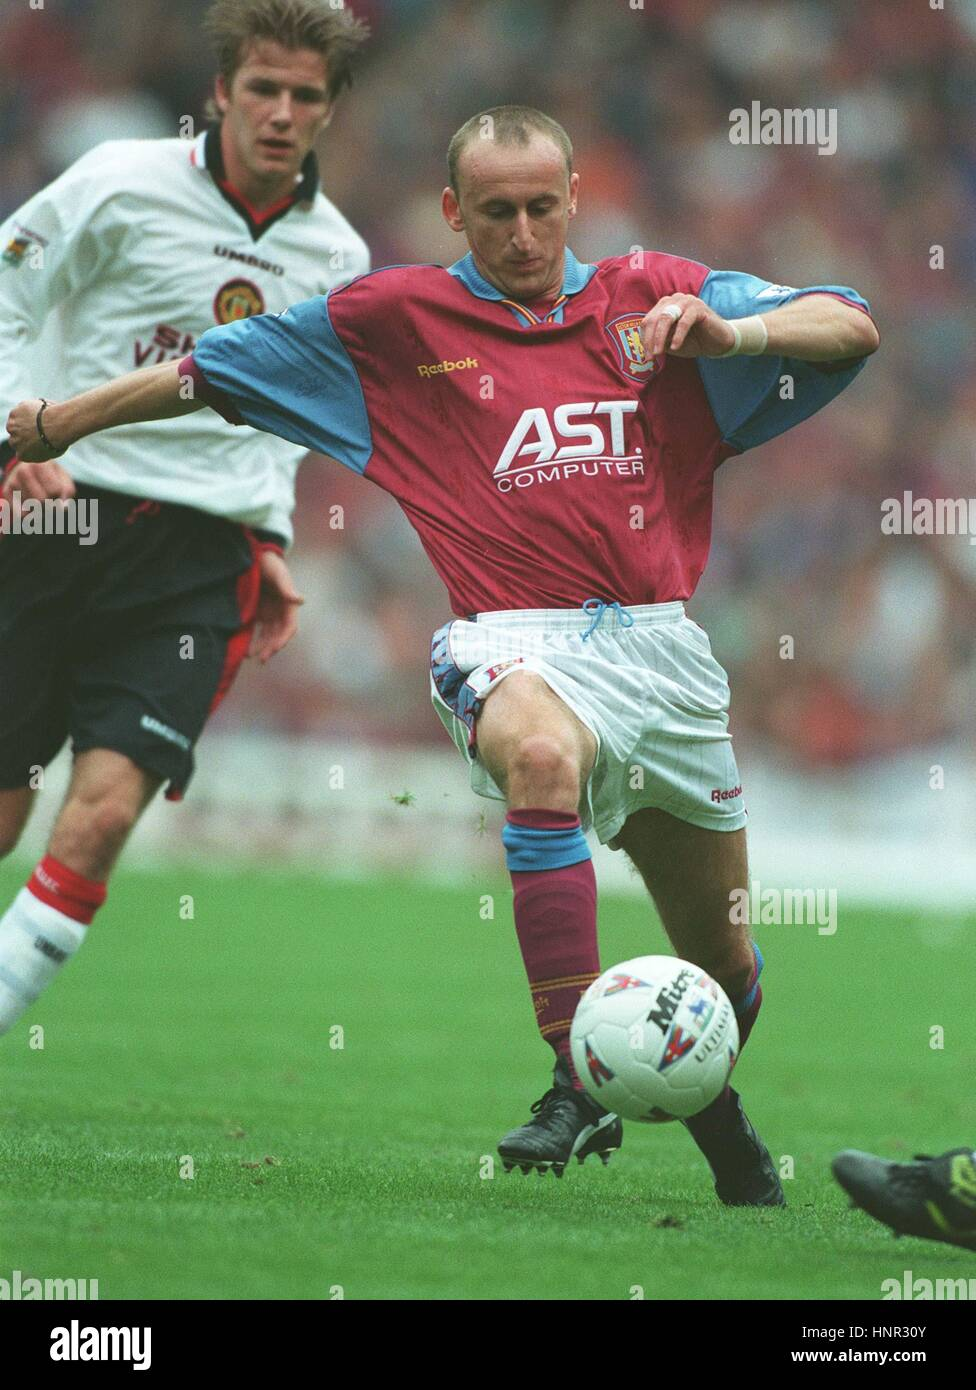 Sasa Curcic Aston Villa Fc 15 October 1996 Stock Photo Alamy